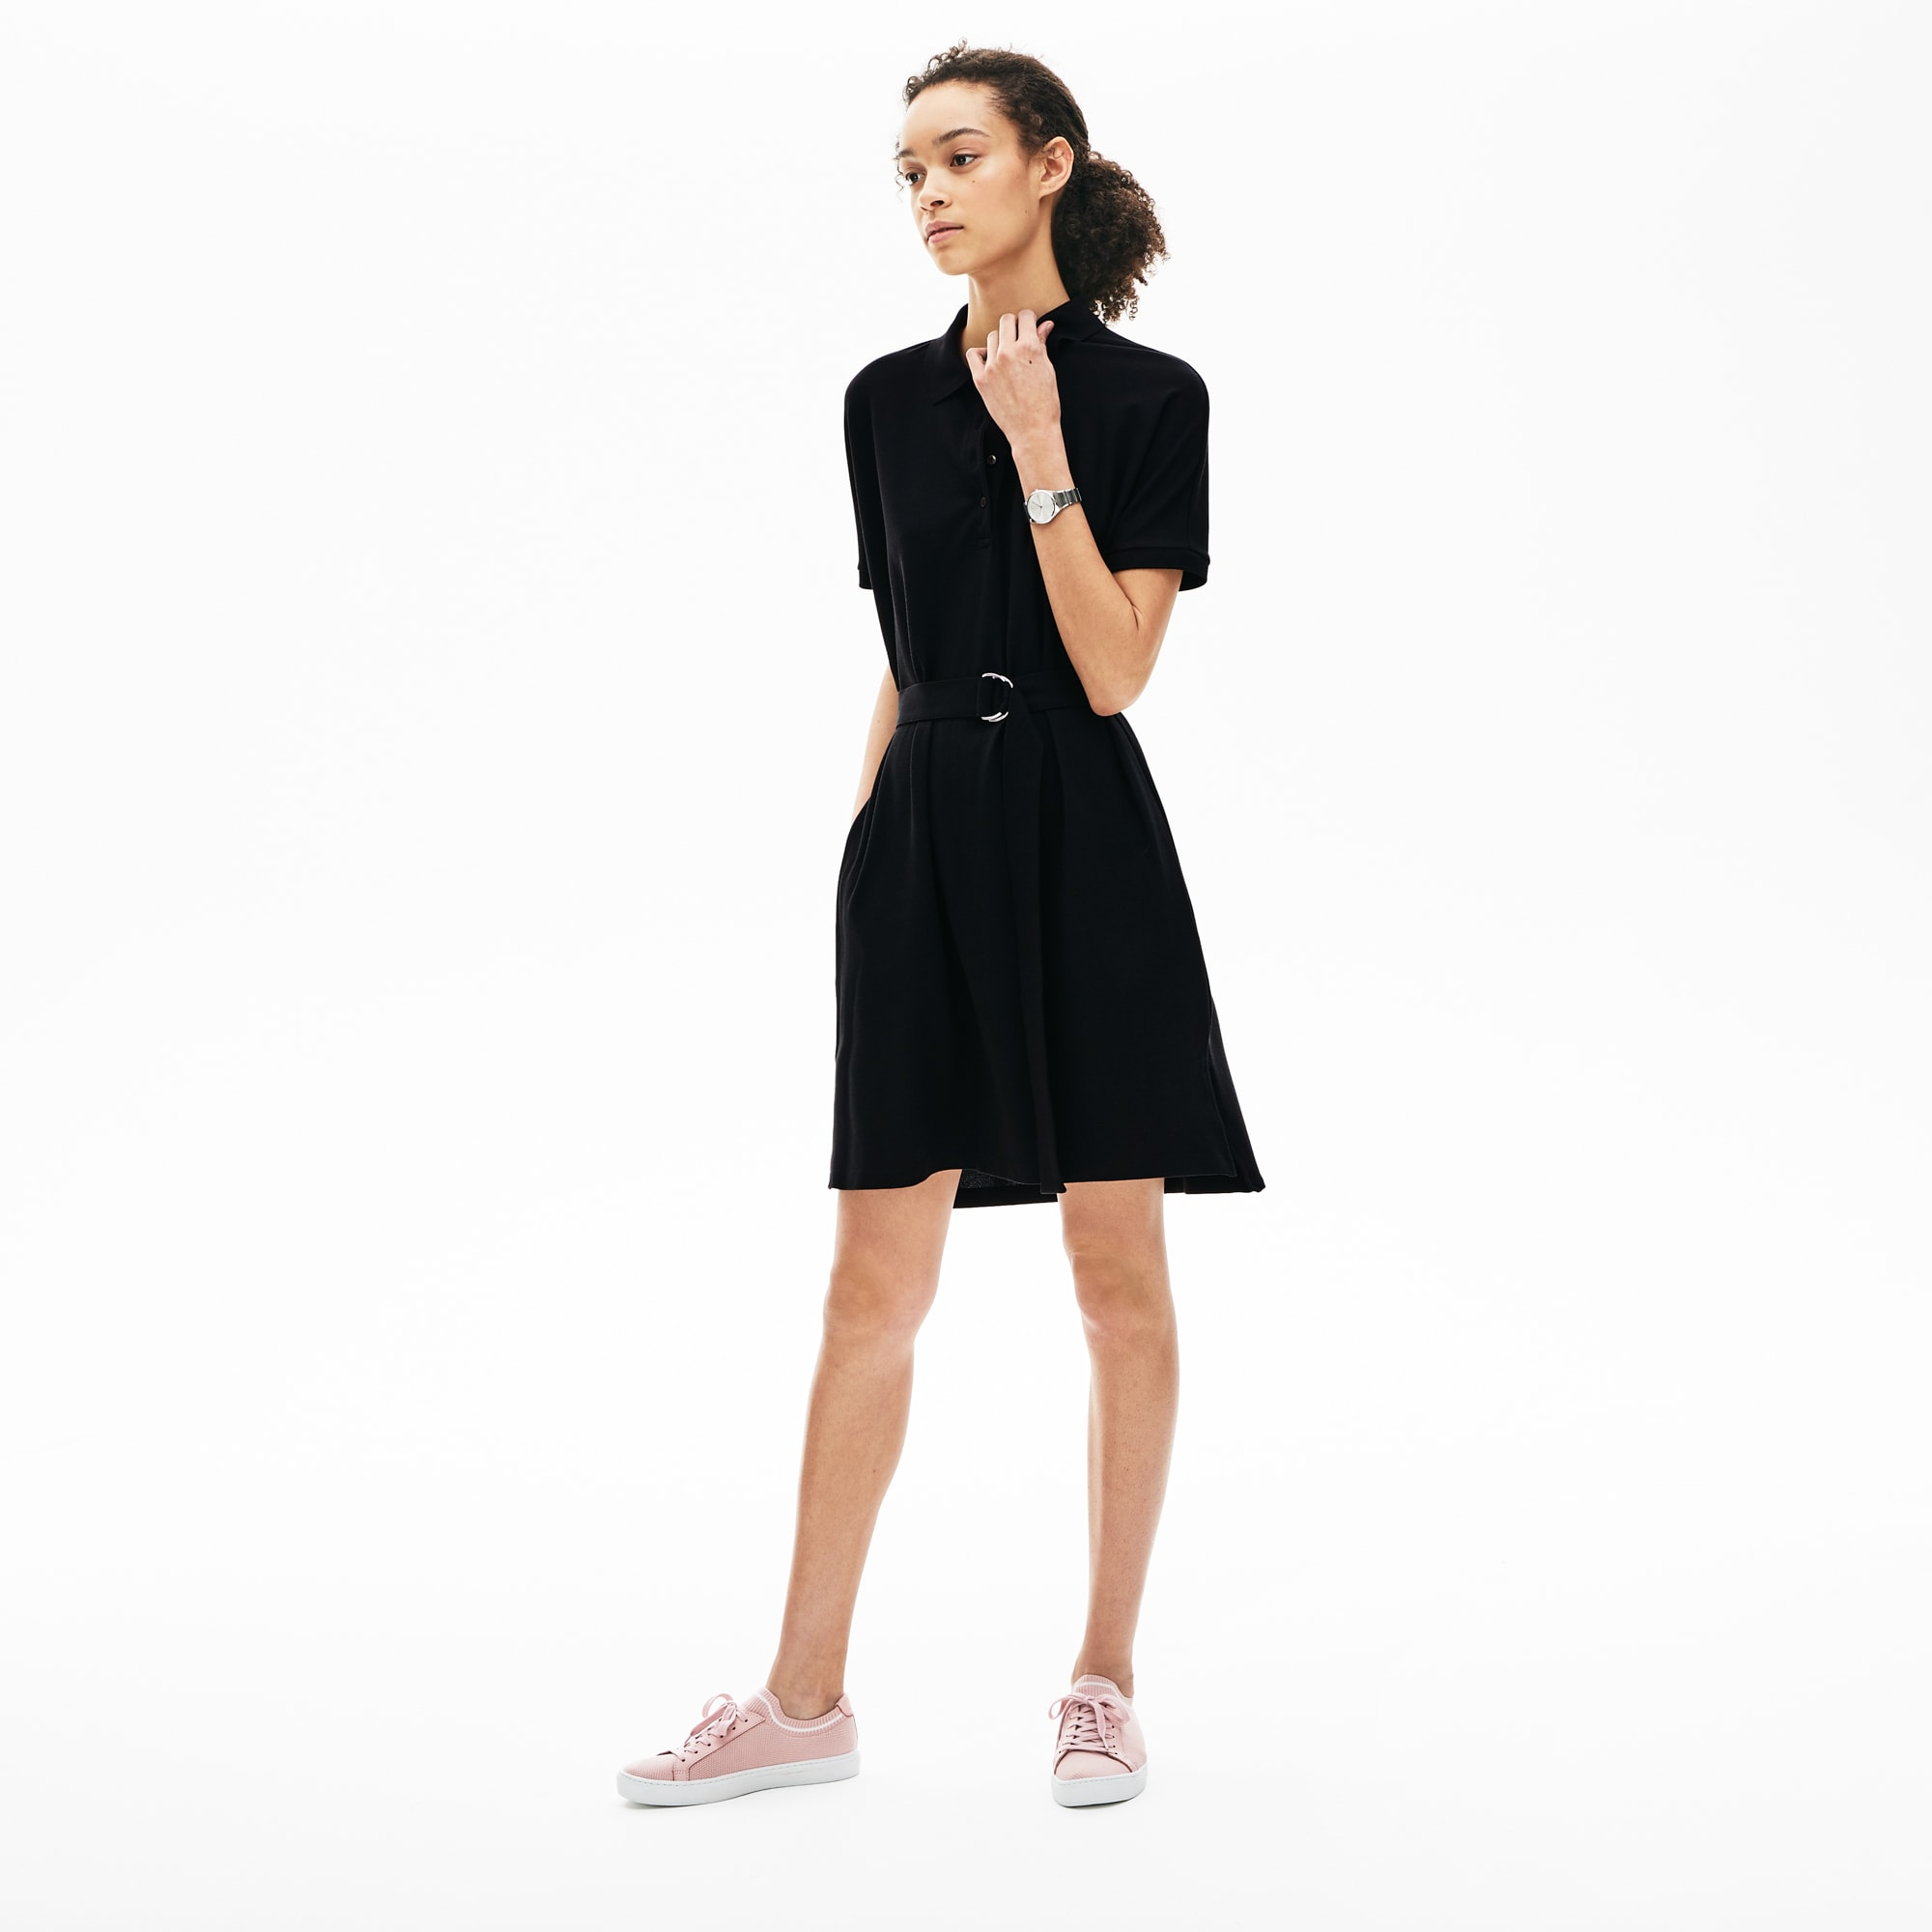 94f726cfad9 Dresses and Skirts | Women's Clothing | LACOSTE